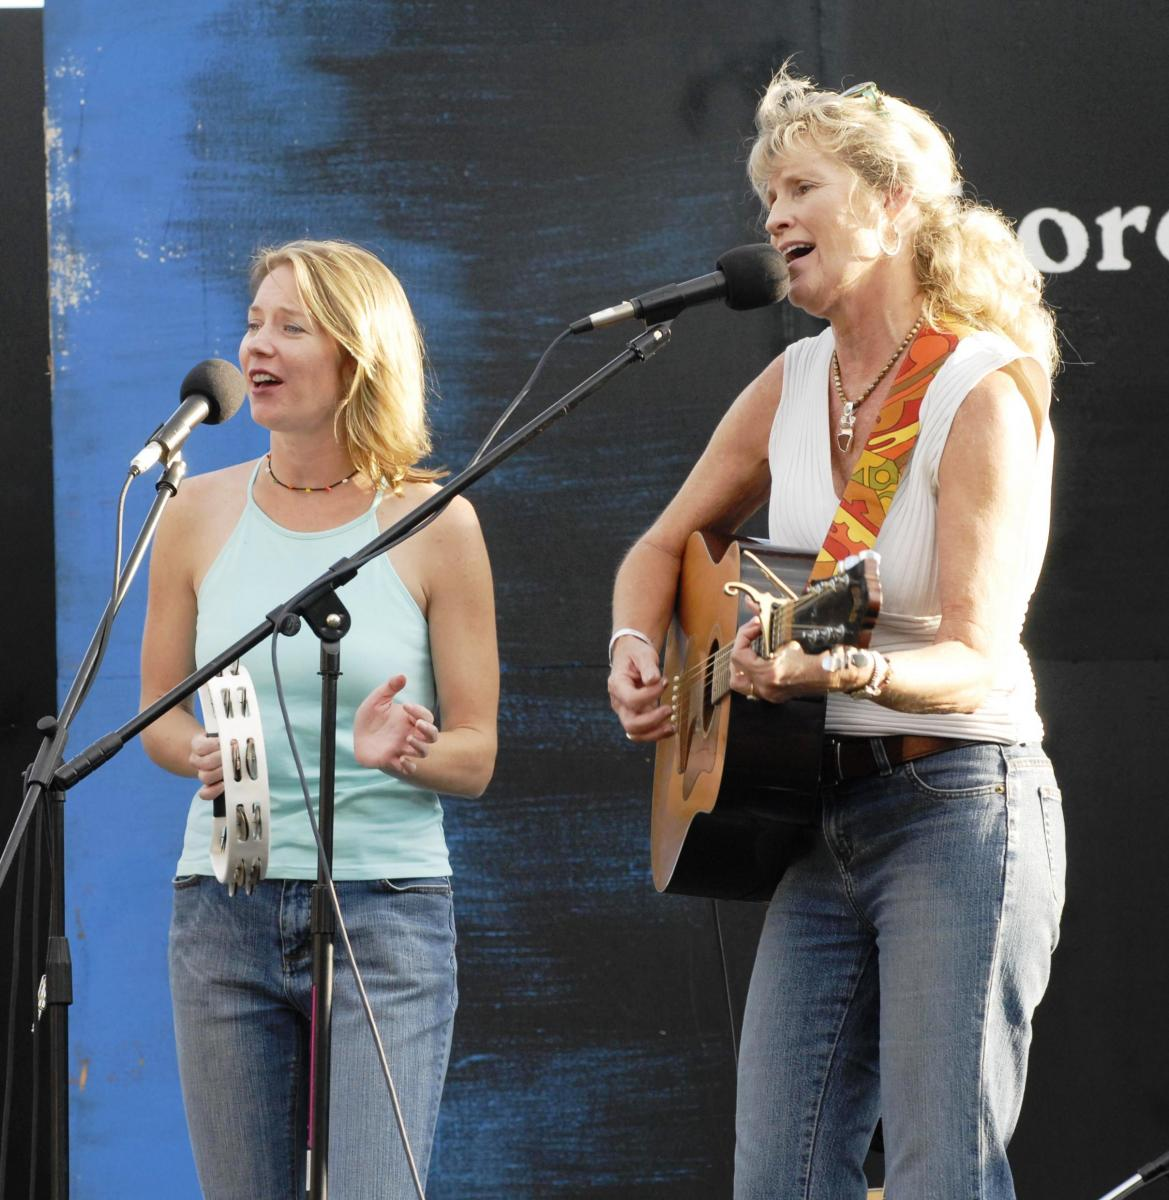 Two blonde women singing on stage with a tambourine and guitar